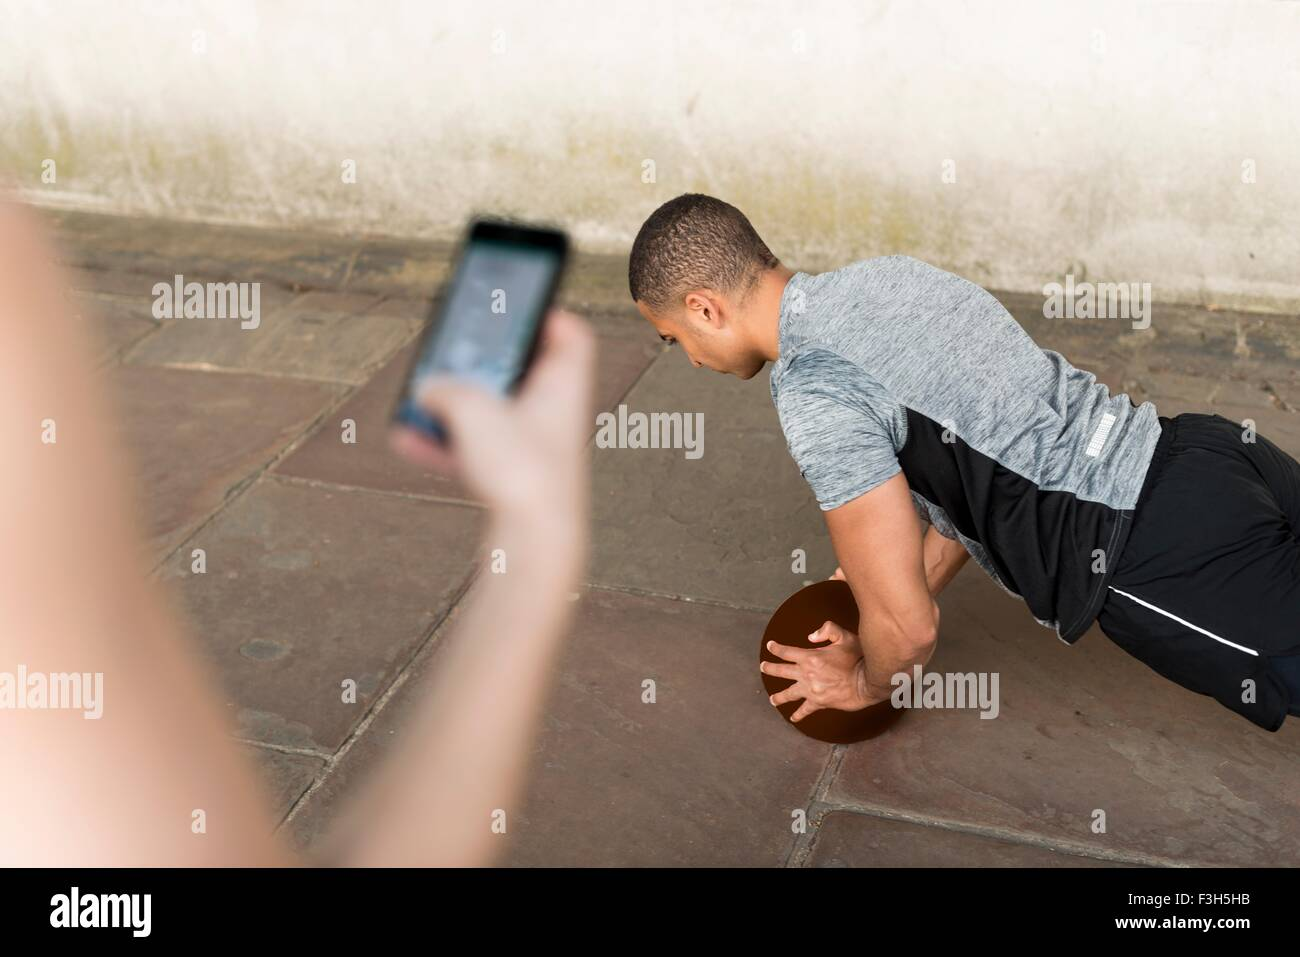 Over shoulder view of trainer timing male runners push ups on smartphone - Stock Image